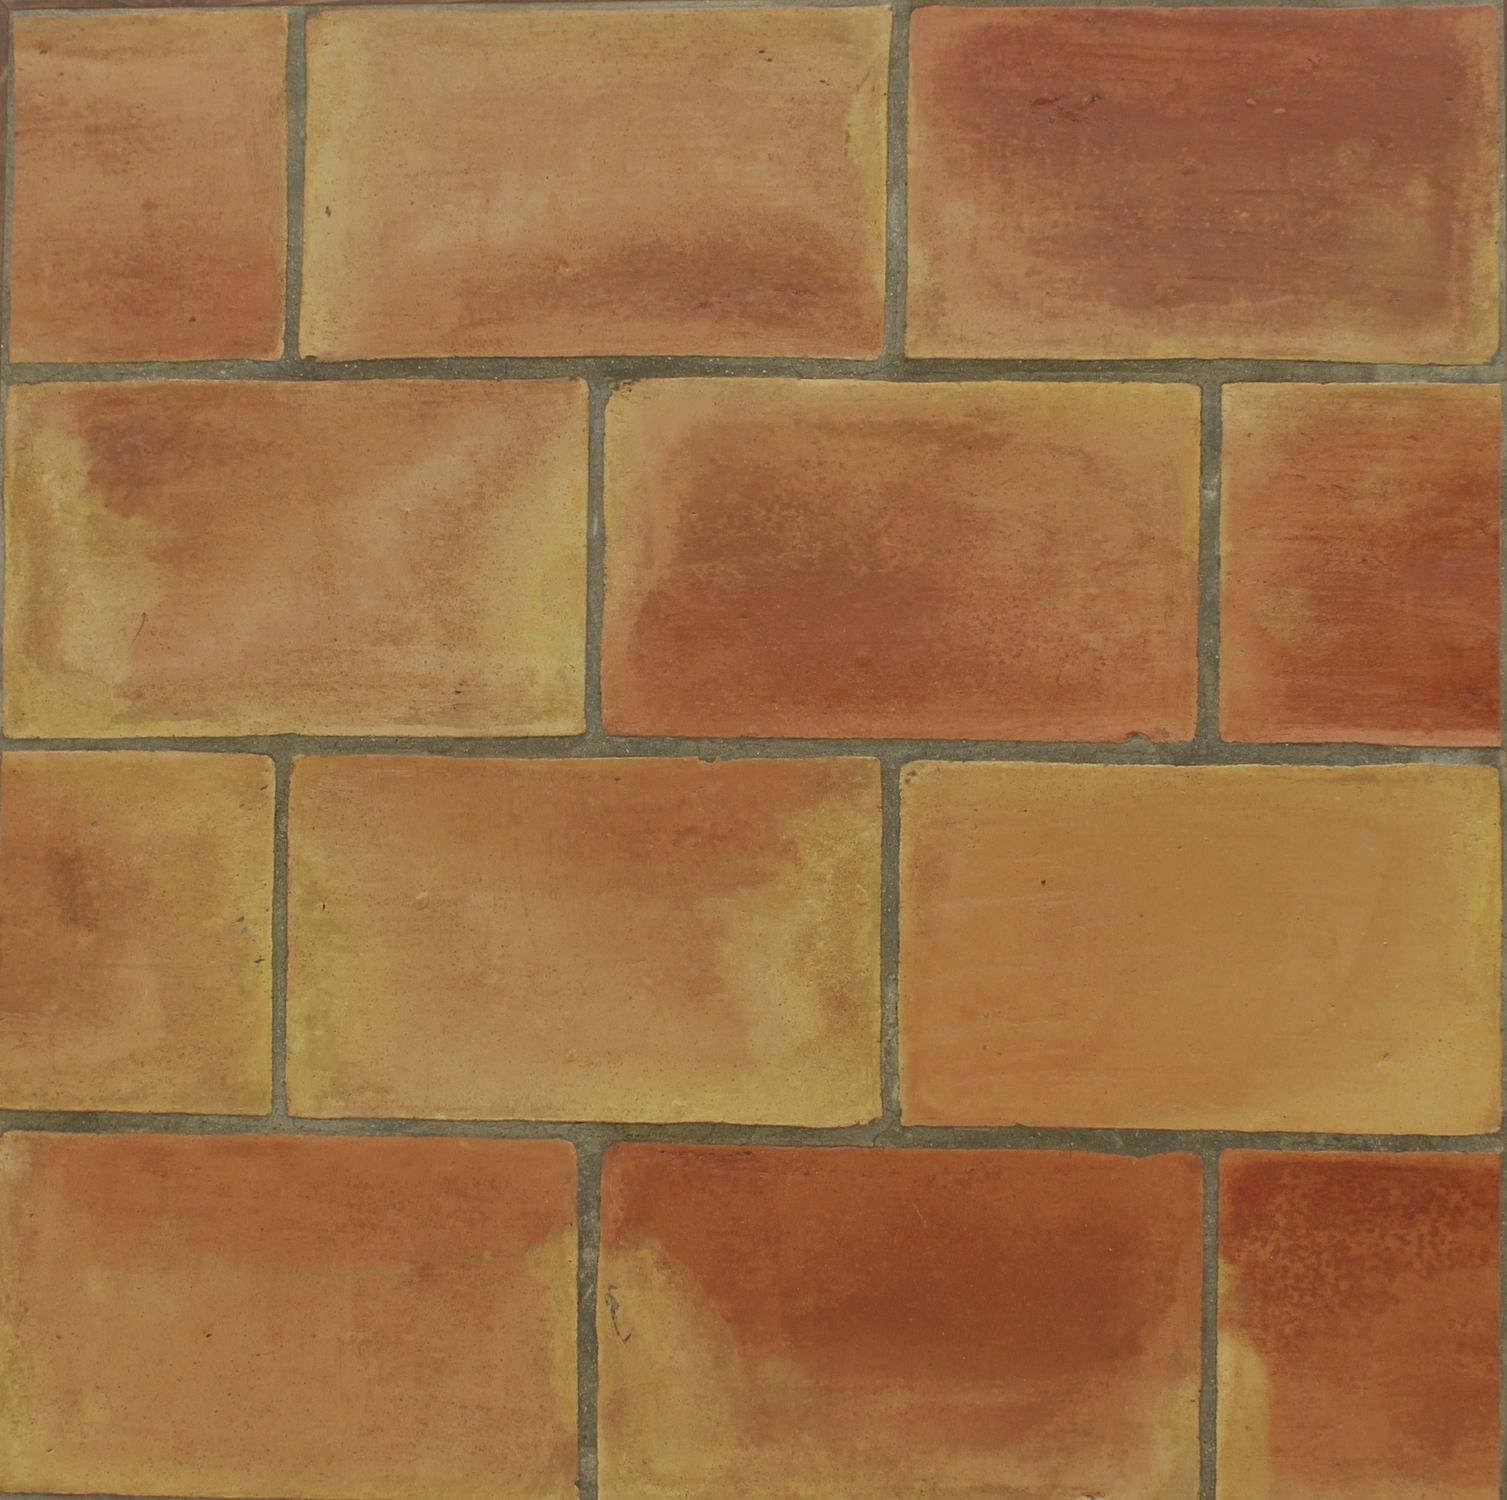 Terracotta Wall Tiles Prices In Pakistan